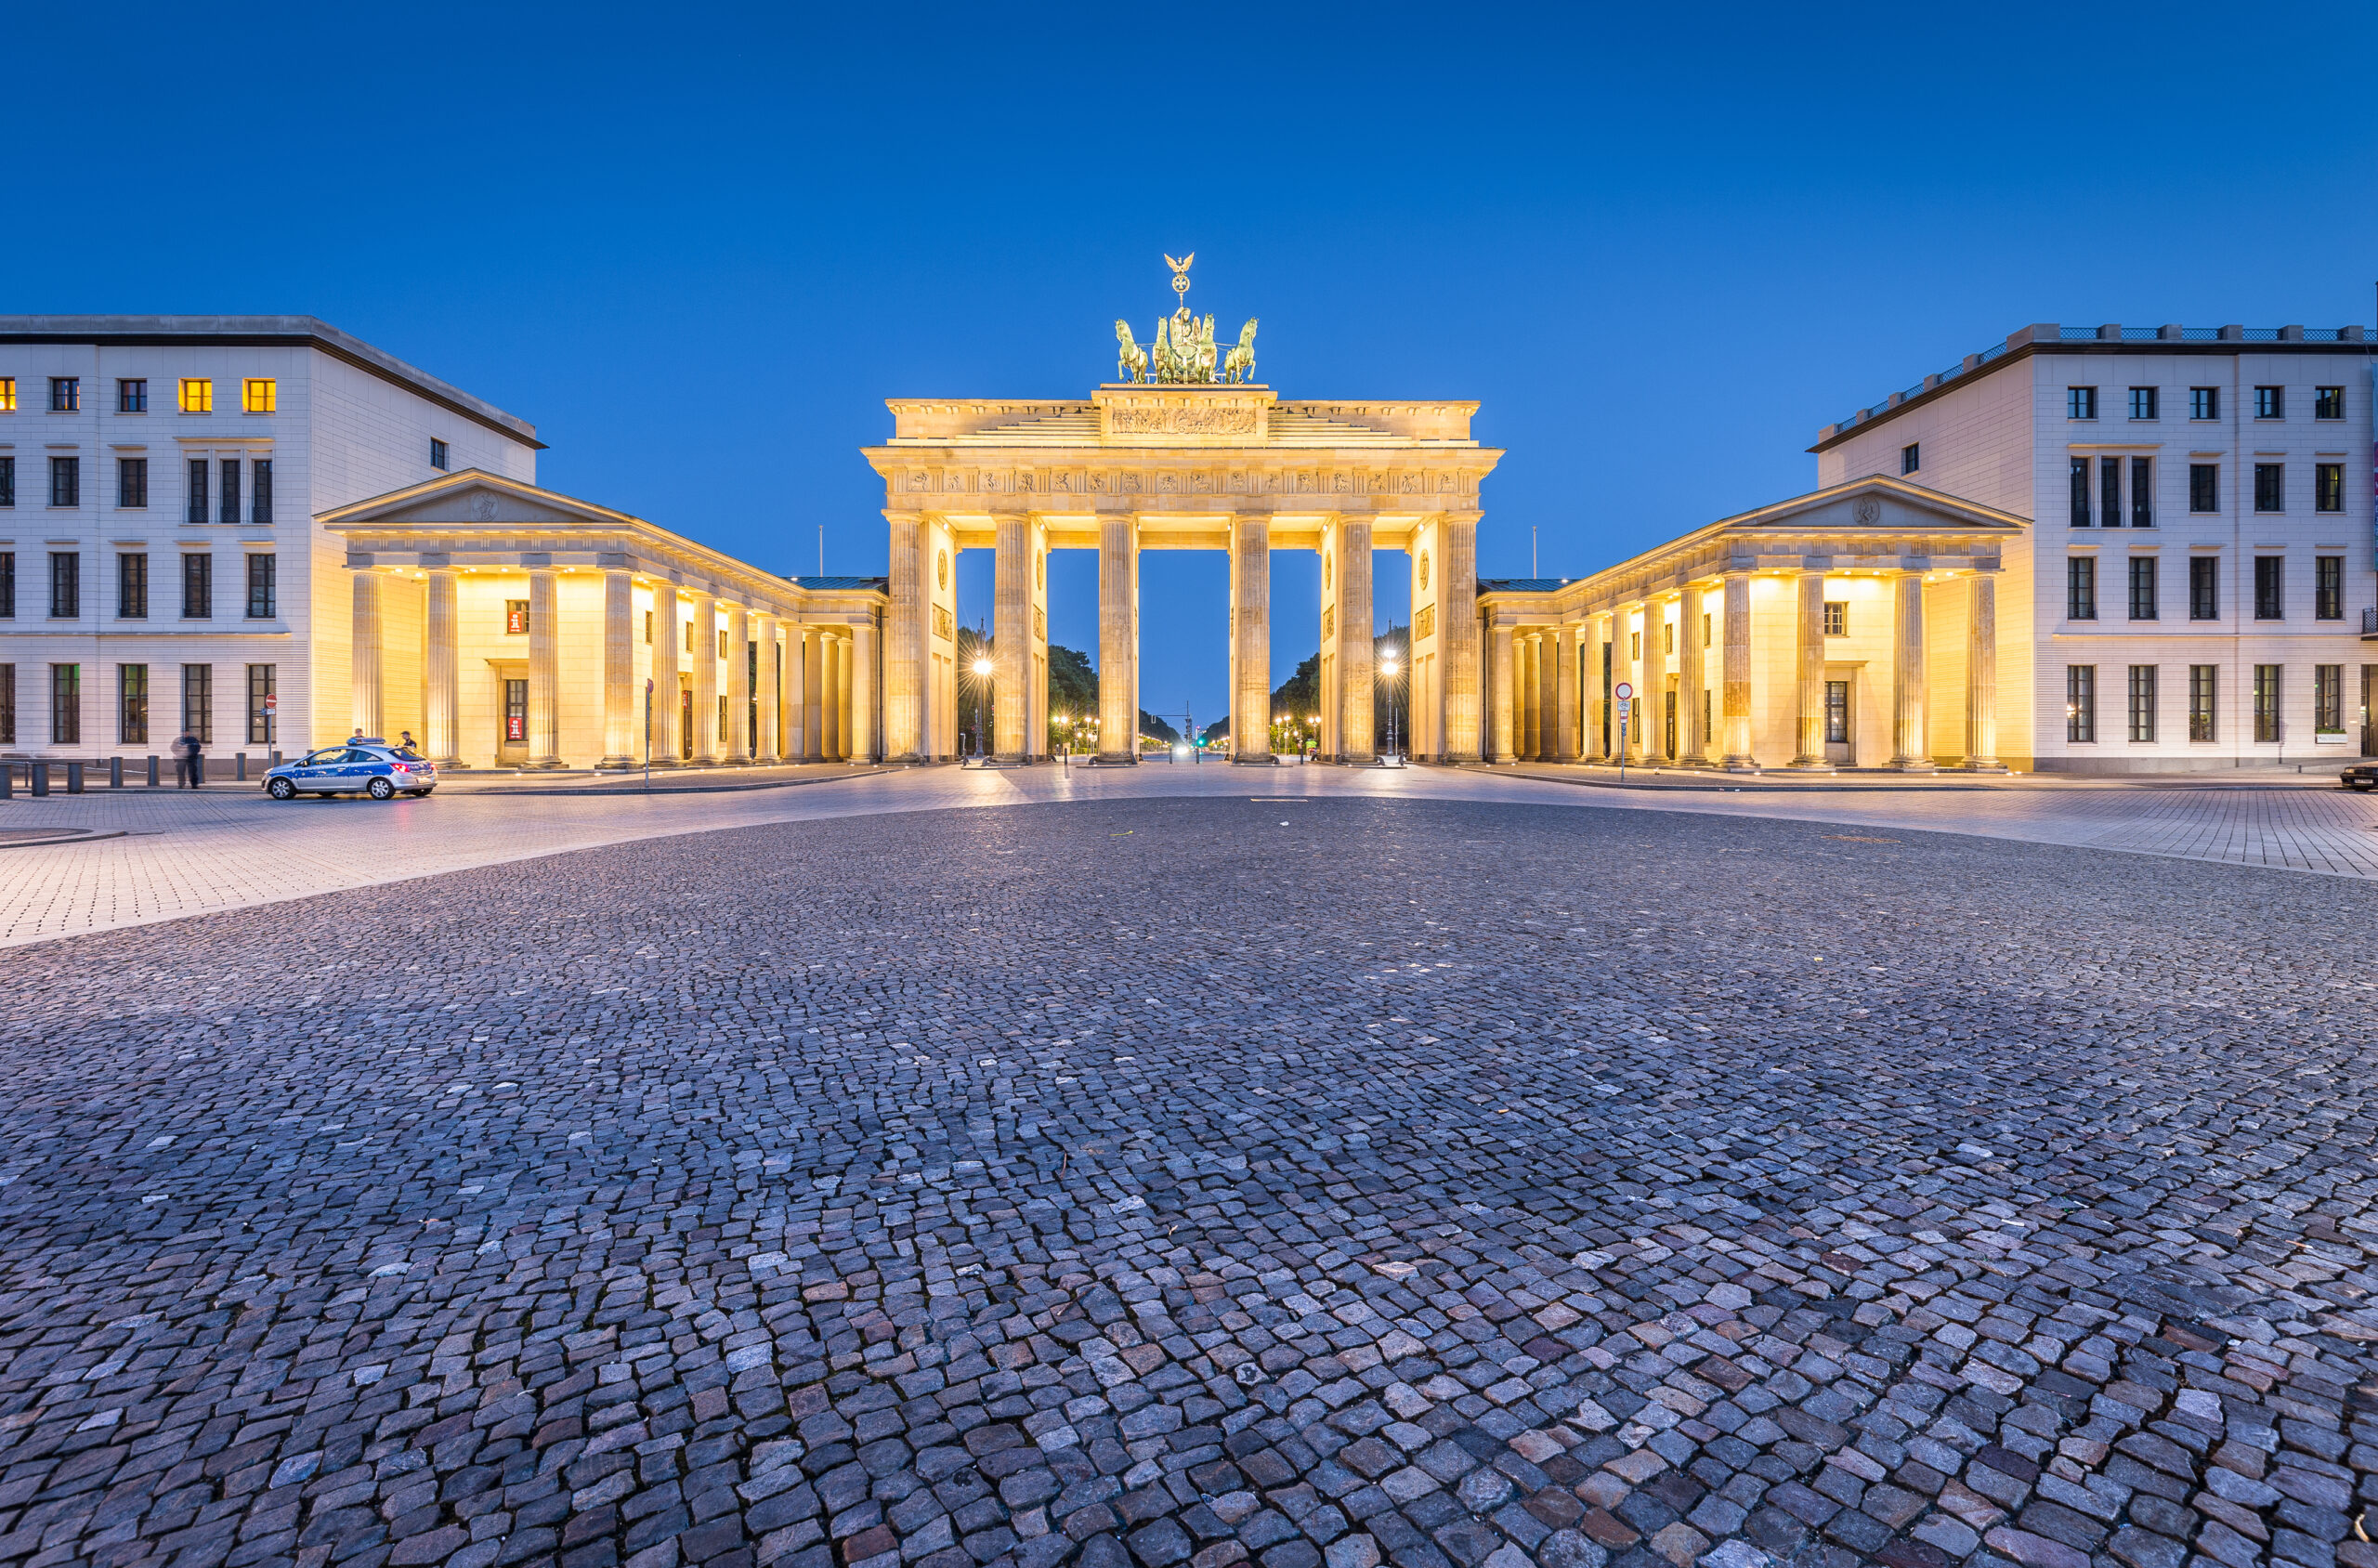 Classic panoramic view of historic Brandenburg Gate, Germany's most famous landmark and a national symbol, in post sunset twilight during blue hour at dusk in summer, central Berlin, Germany.